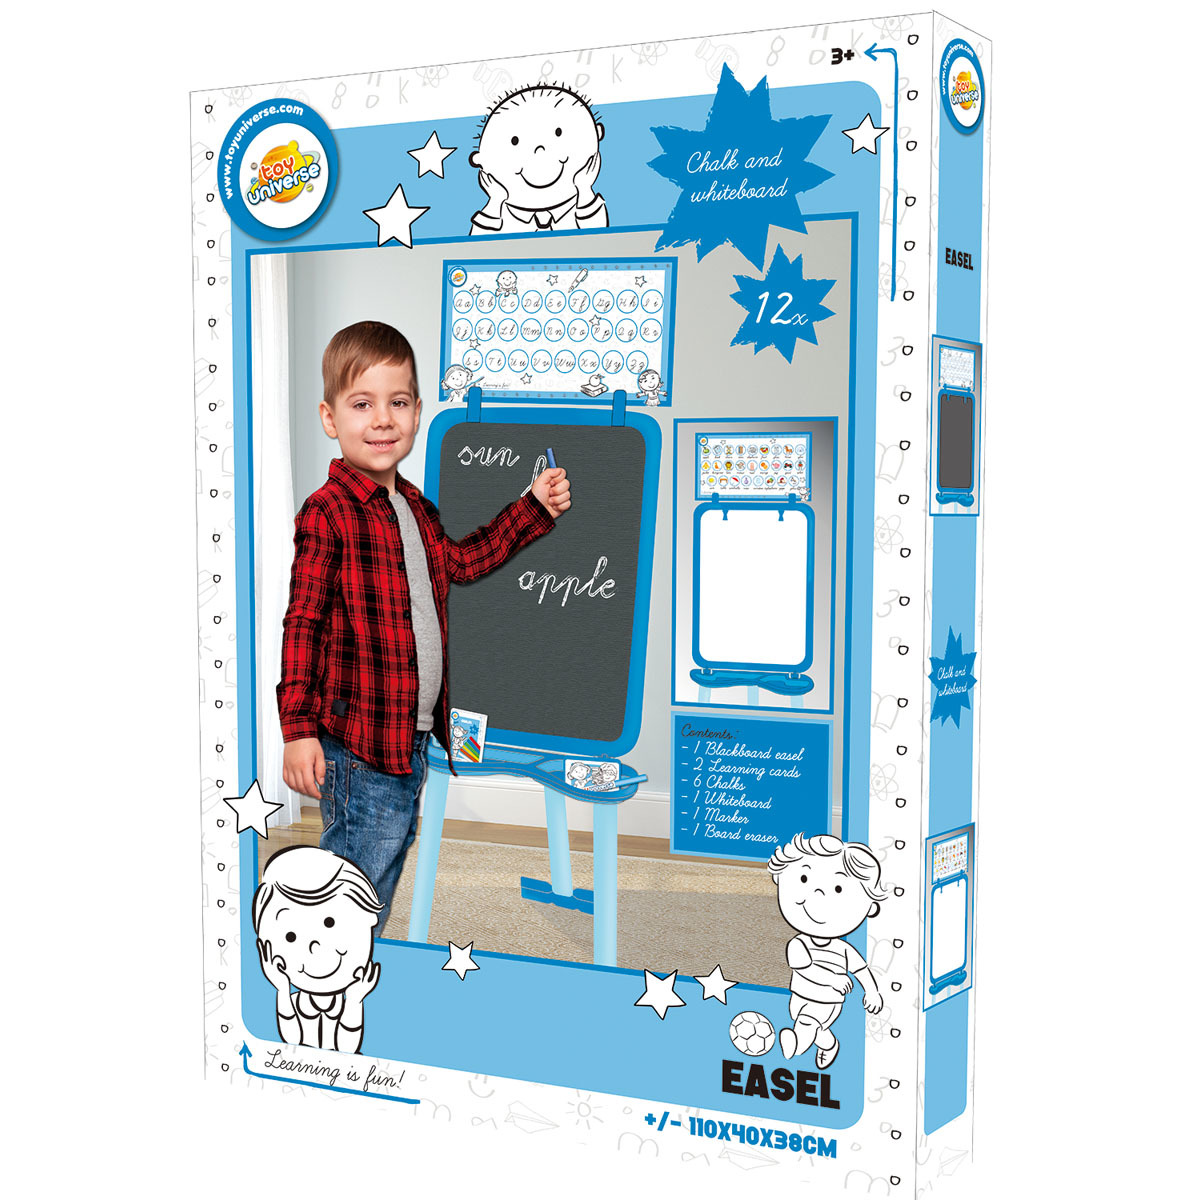 Toy Universe Easel - Blue from Early Learning Center